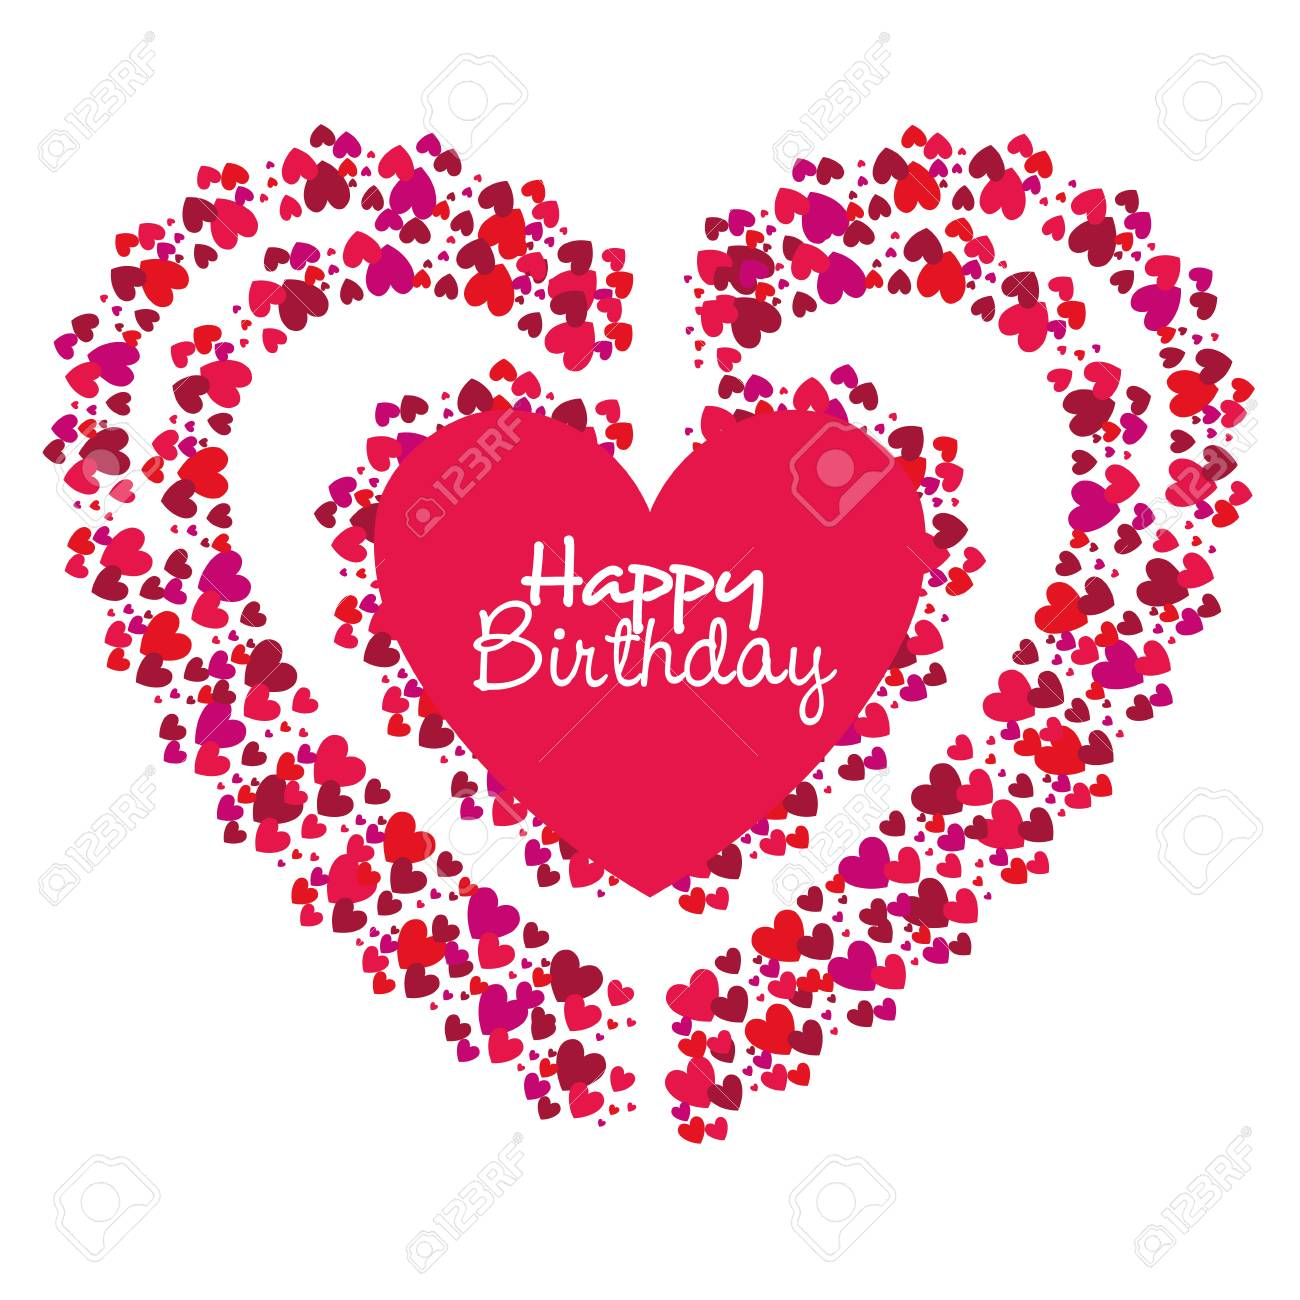 Happy Birthday Card With Heart Love Vector Illustration Design Stock